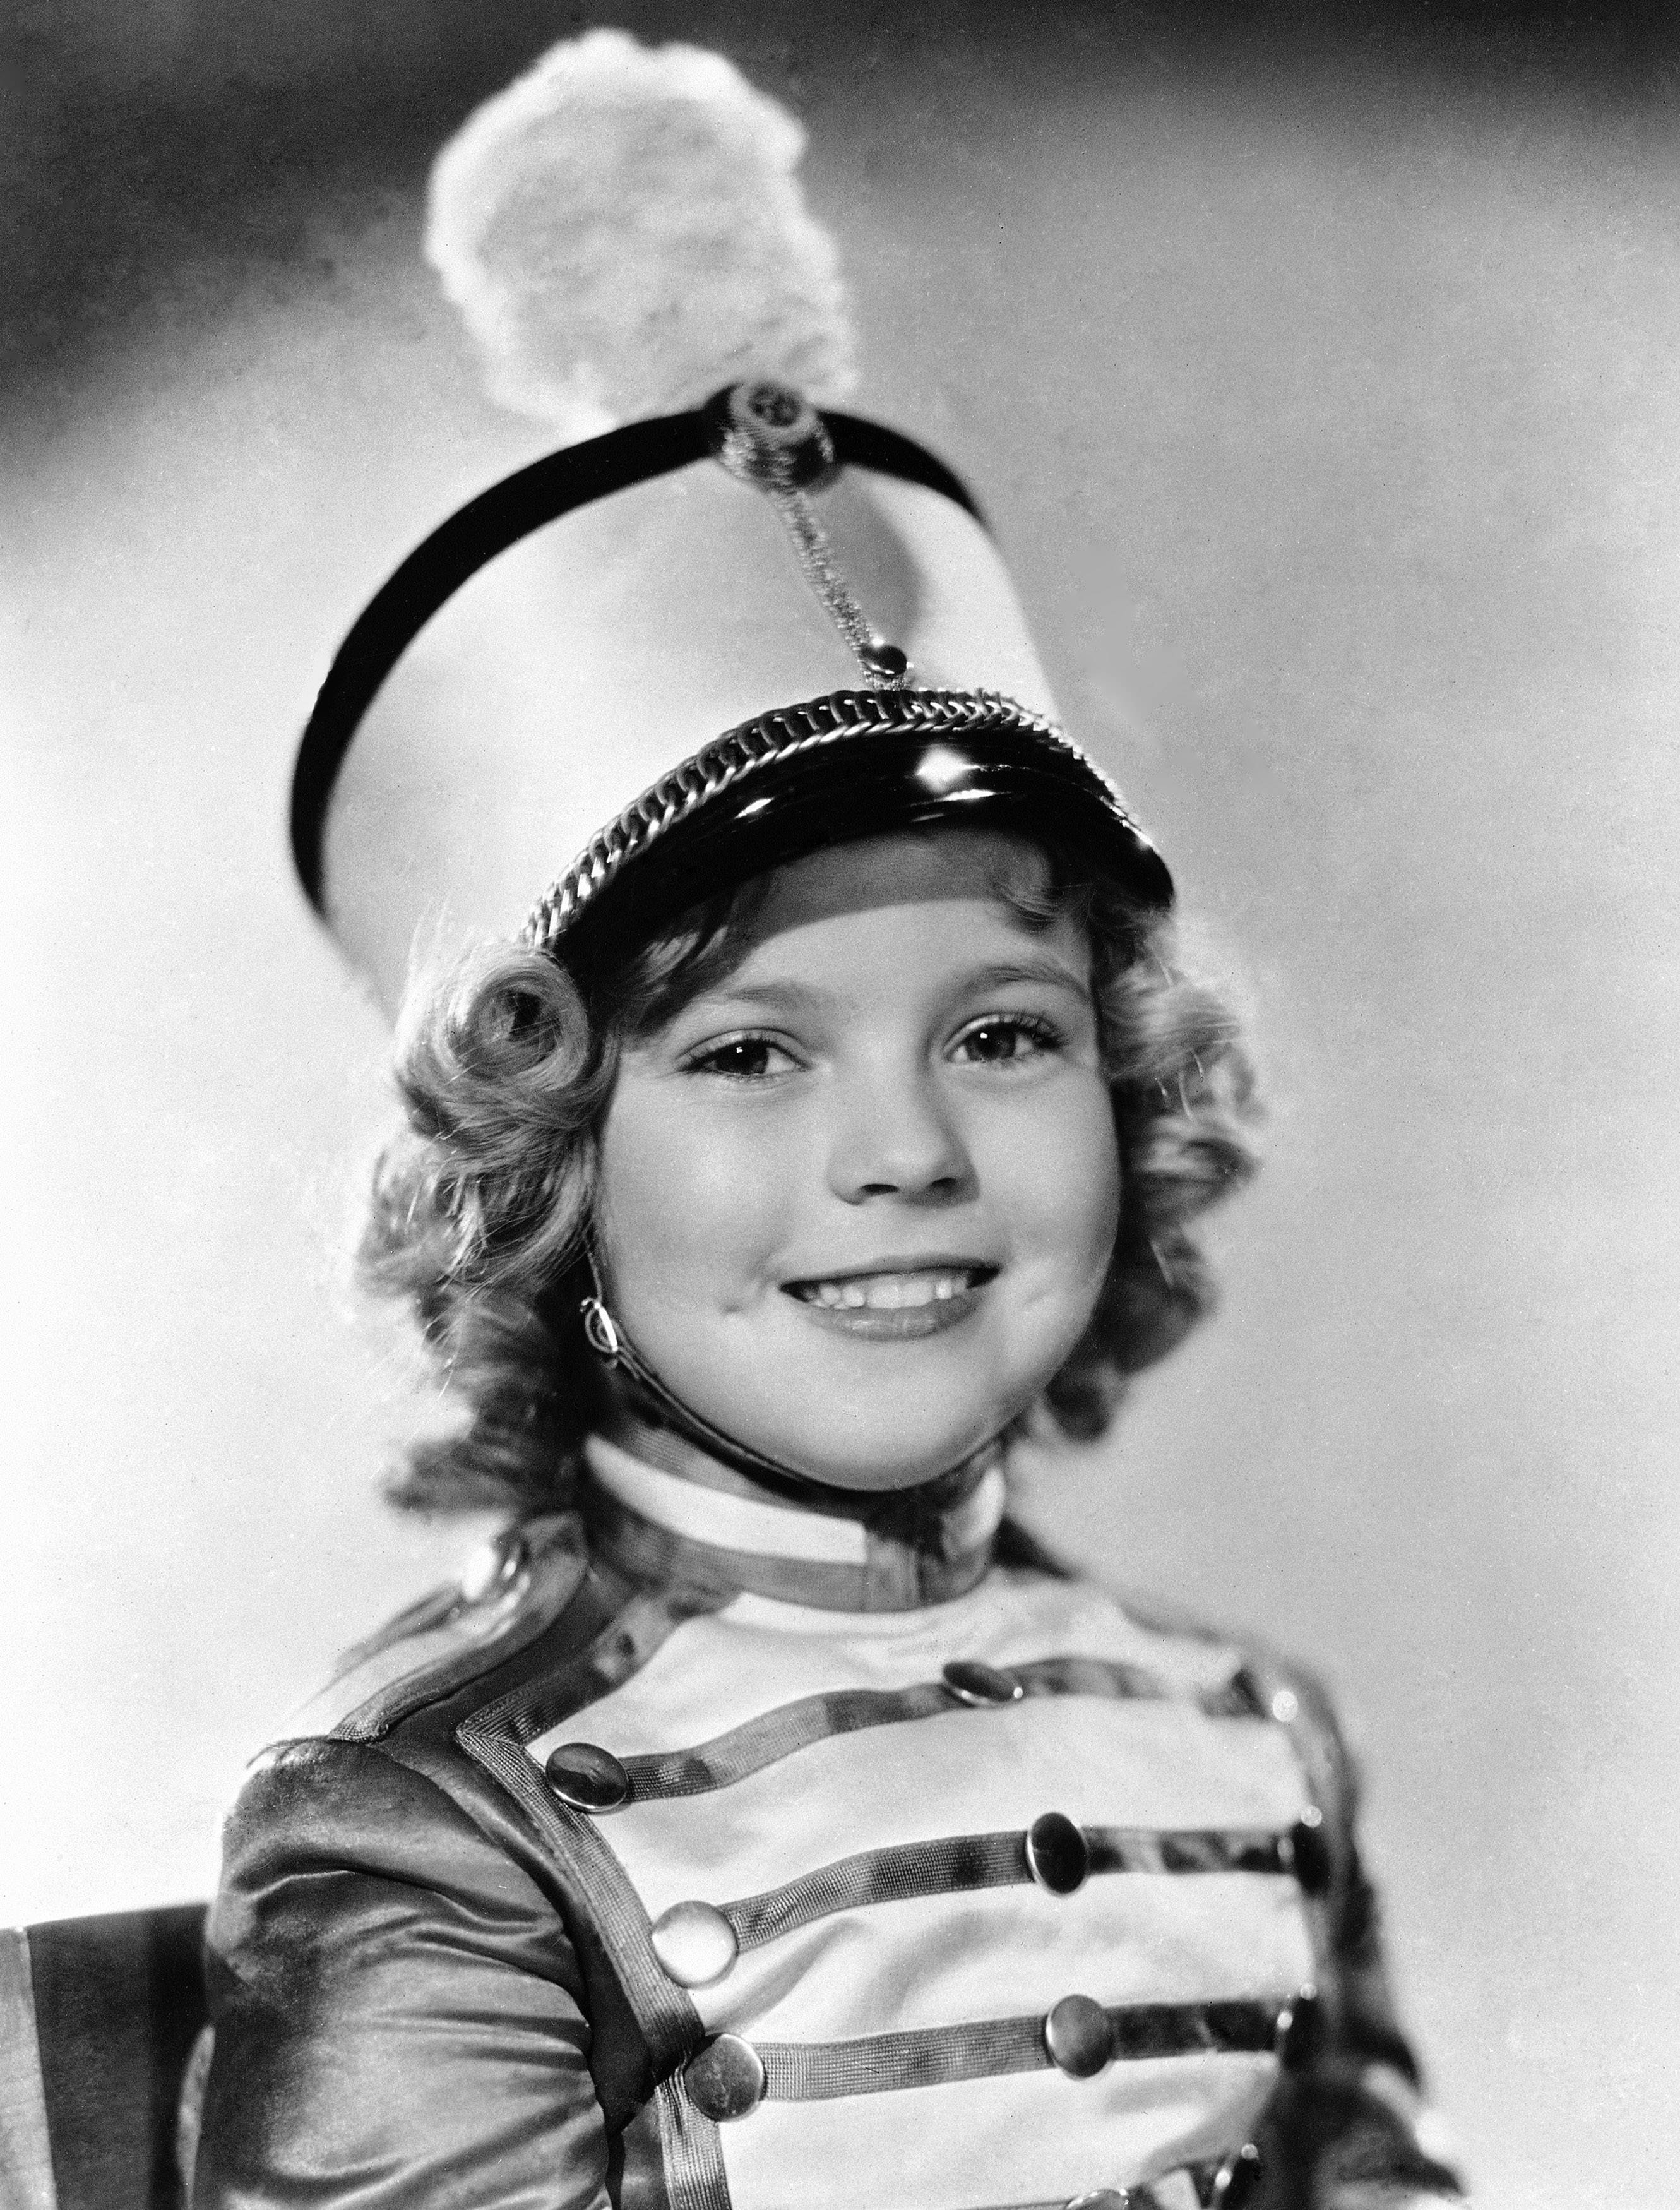 In this 1936 file photo, actress Shirley Temple is photographed as she appeared in Poor Little Rich Girl. Temple, who was born in 1928 and began acting at the age of three, received an honorary Academy Award in 1934 for her contributions as a child film star.